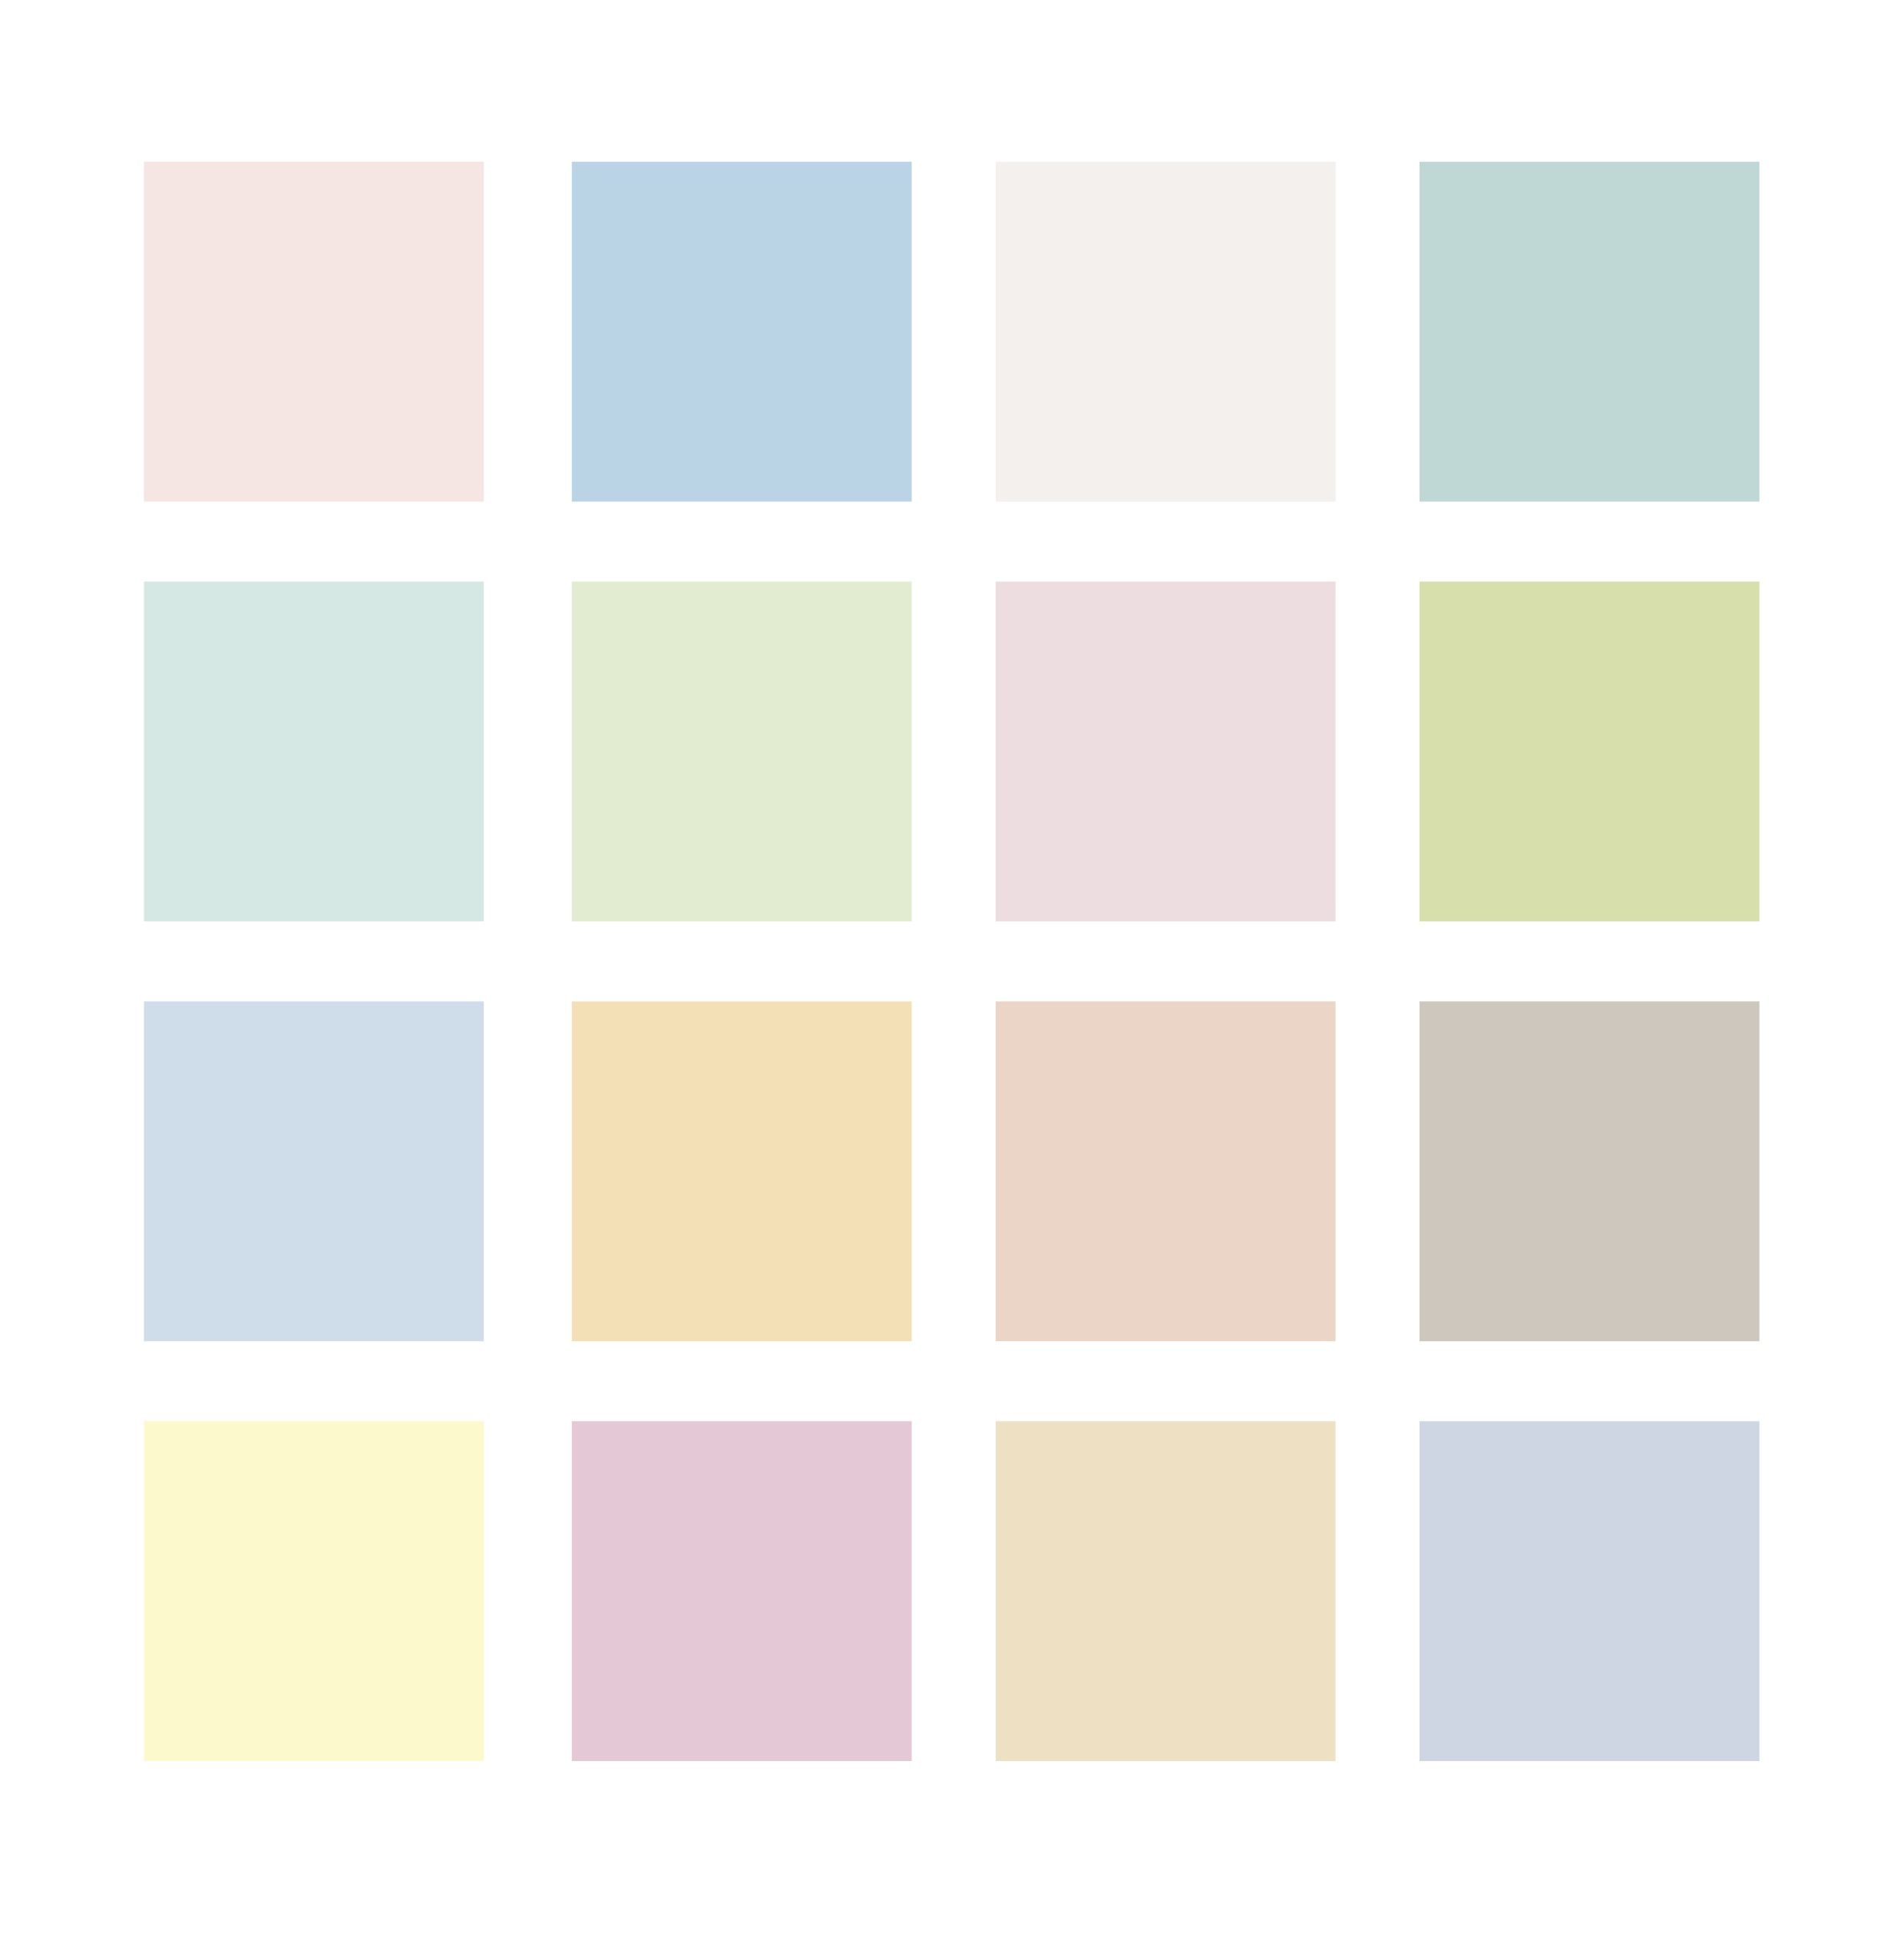 Pin By Kasey Rich On Food Shoots Pastel Paint Colors Pastel Colors Pastel Painting